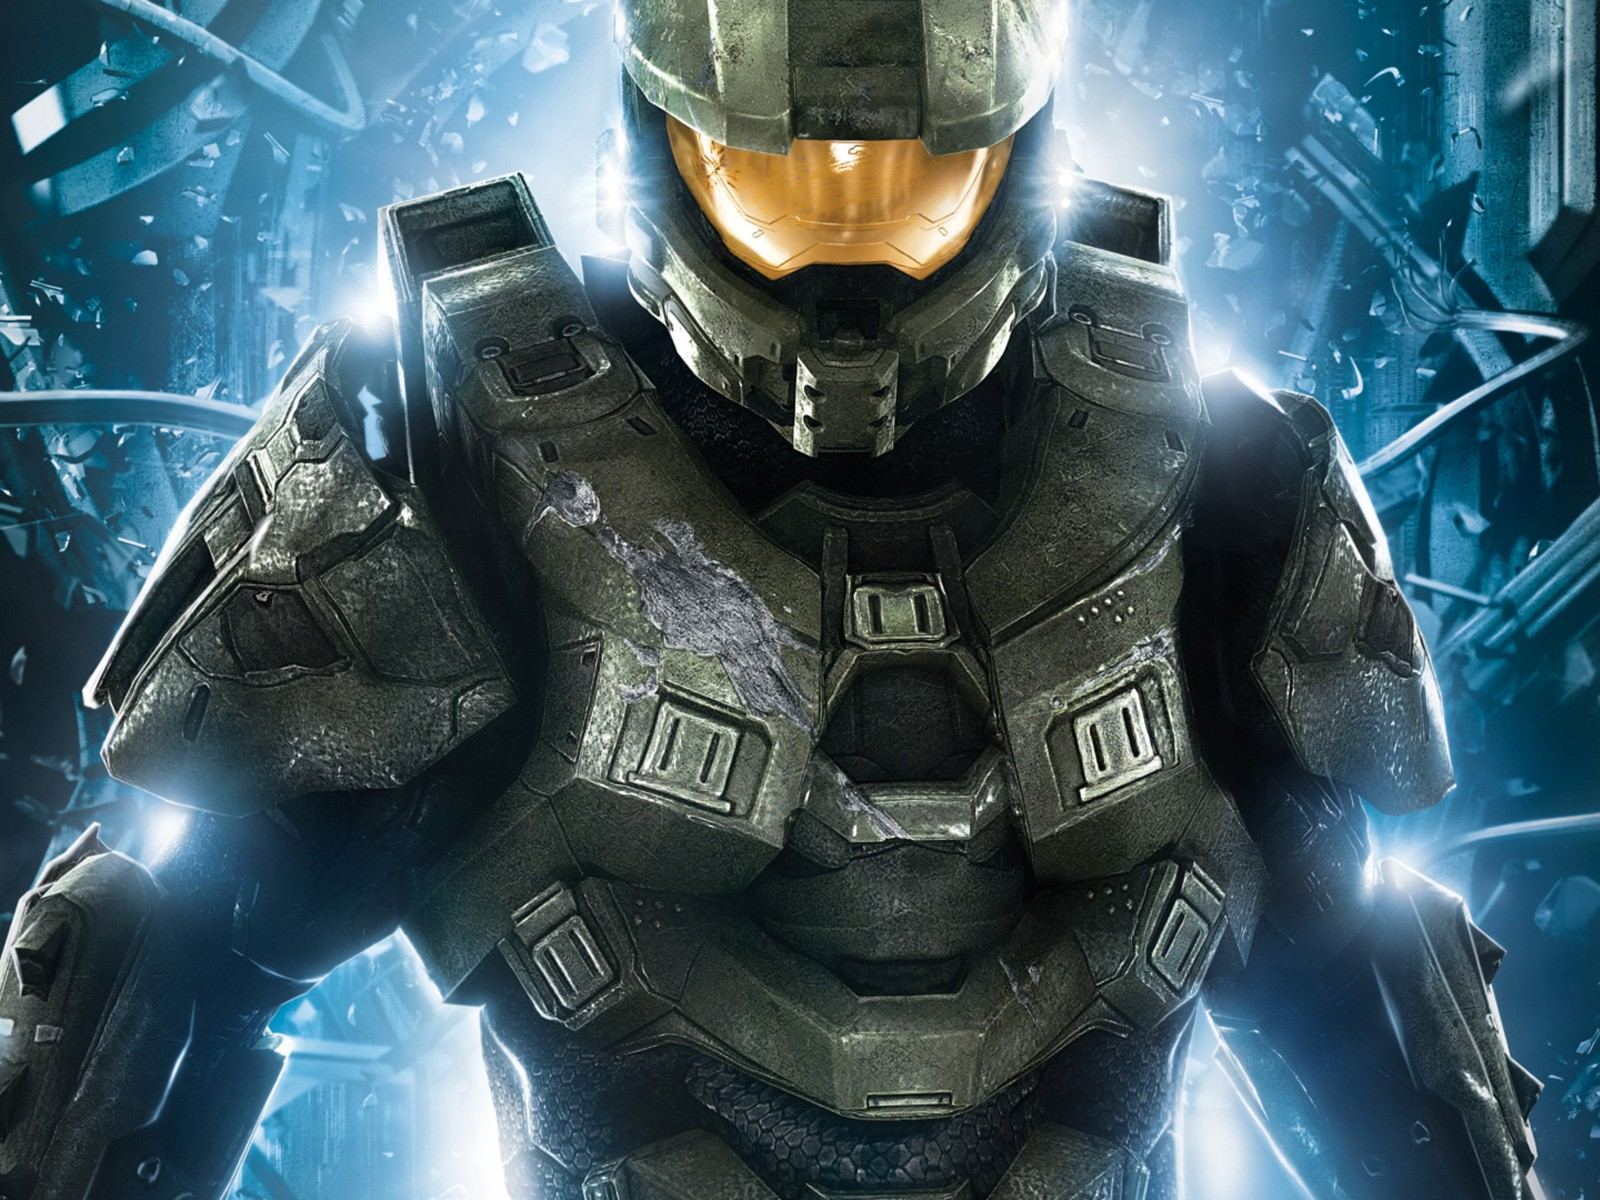 Awesome Backgrounds For Boys 6 awesome halo 4 wallpapers 1600x1200